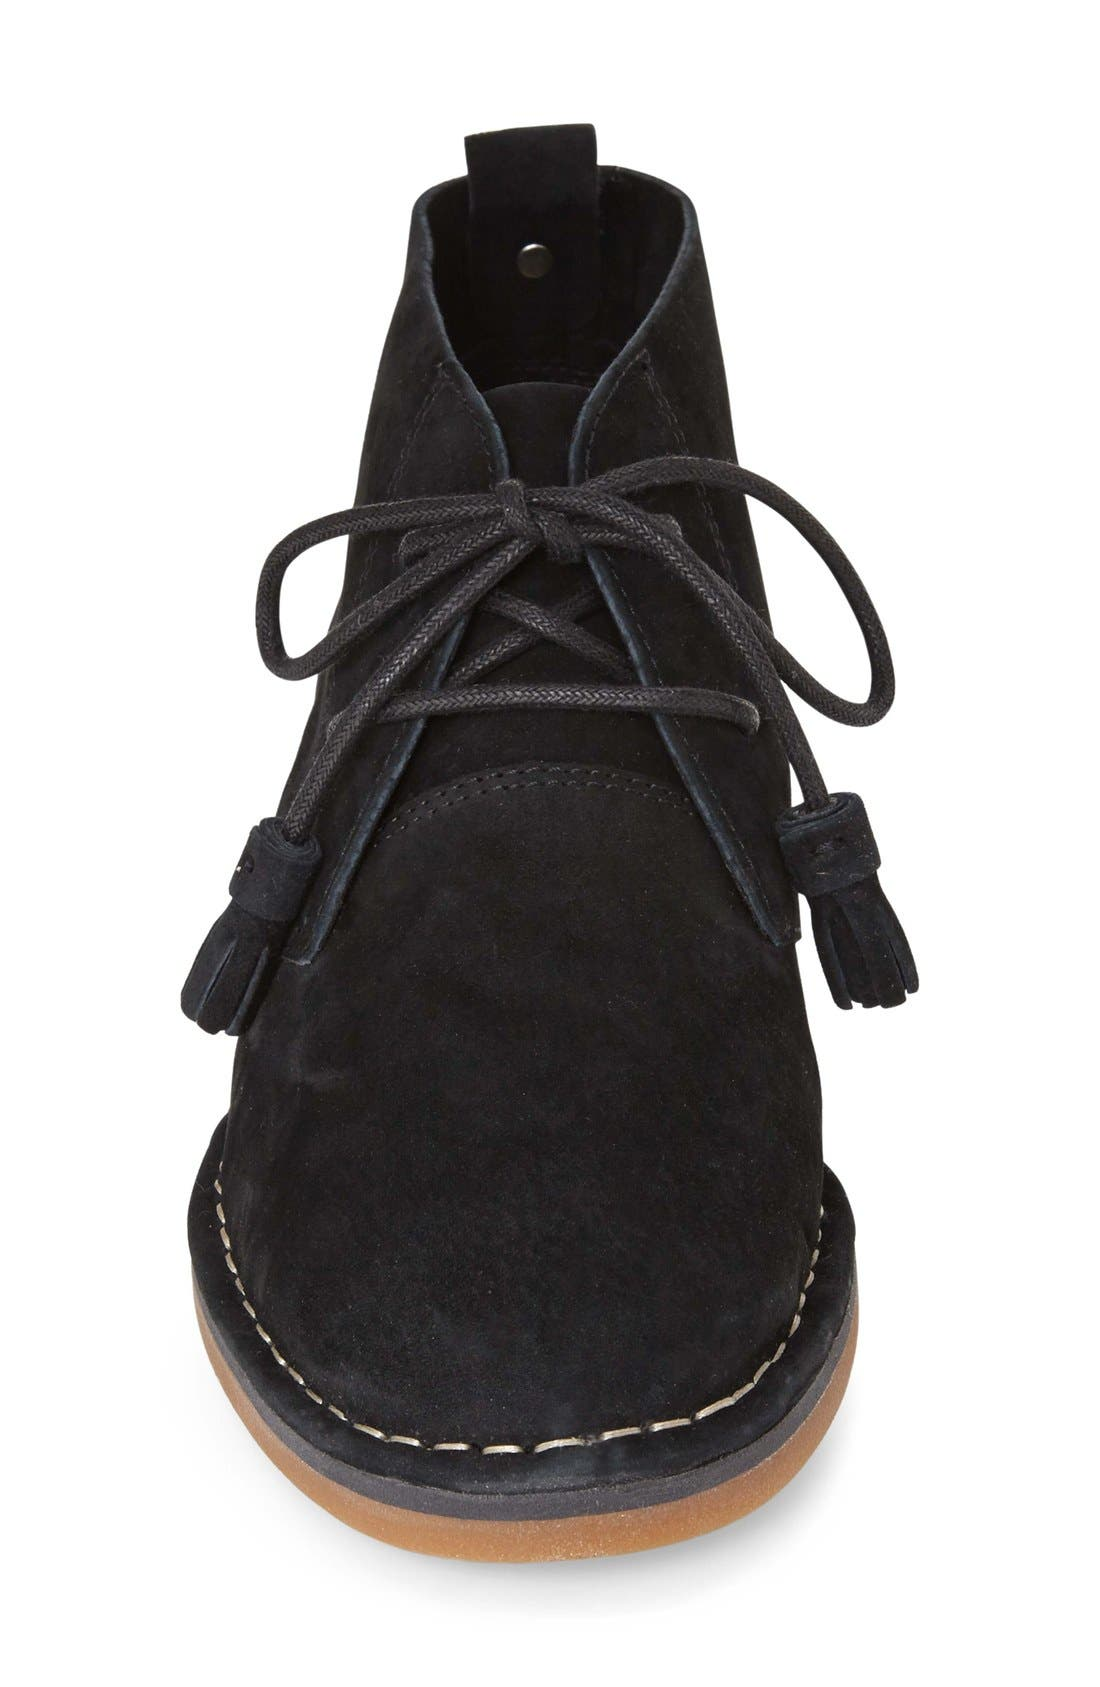 HUSH PUPPIES<SUP>®</SUP>, Cyra Catelyn Chukka Boot, Alternate thumbnail 2, color, BLACK SUEDE